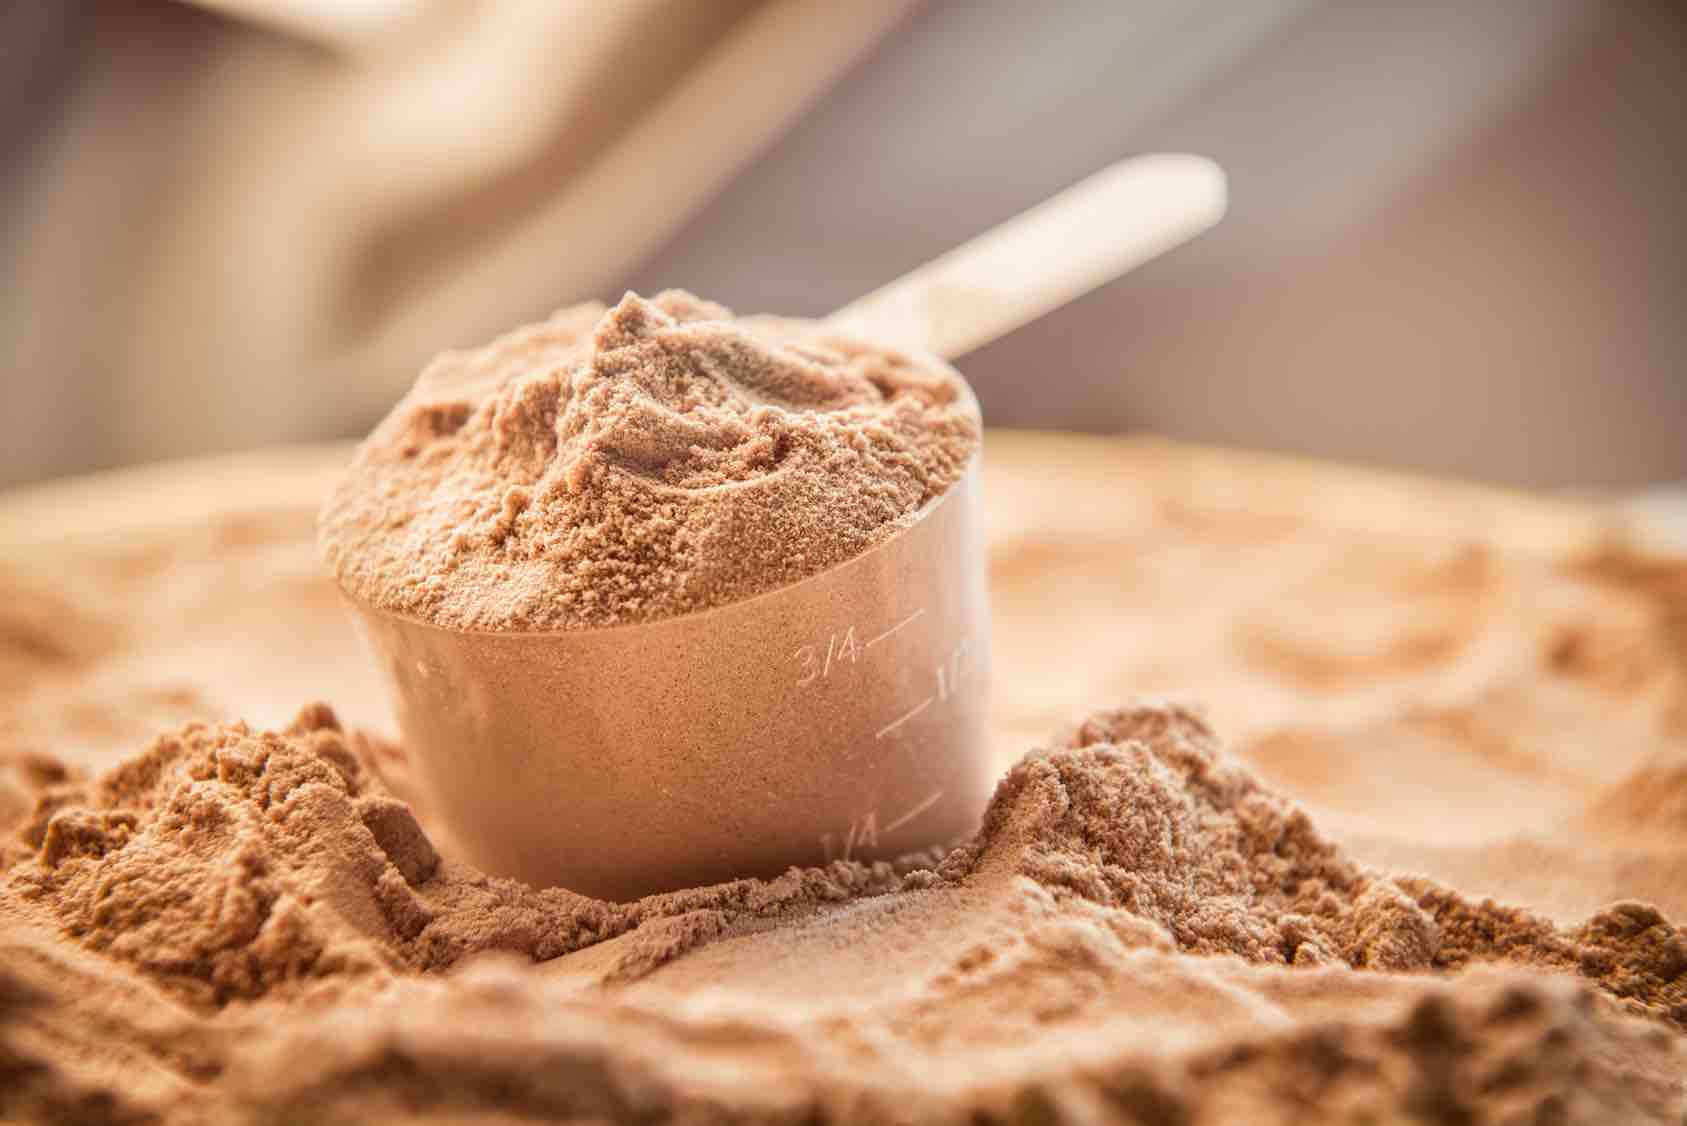 Which protein powder should I use to get the best results?